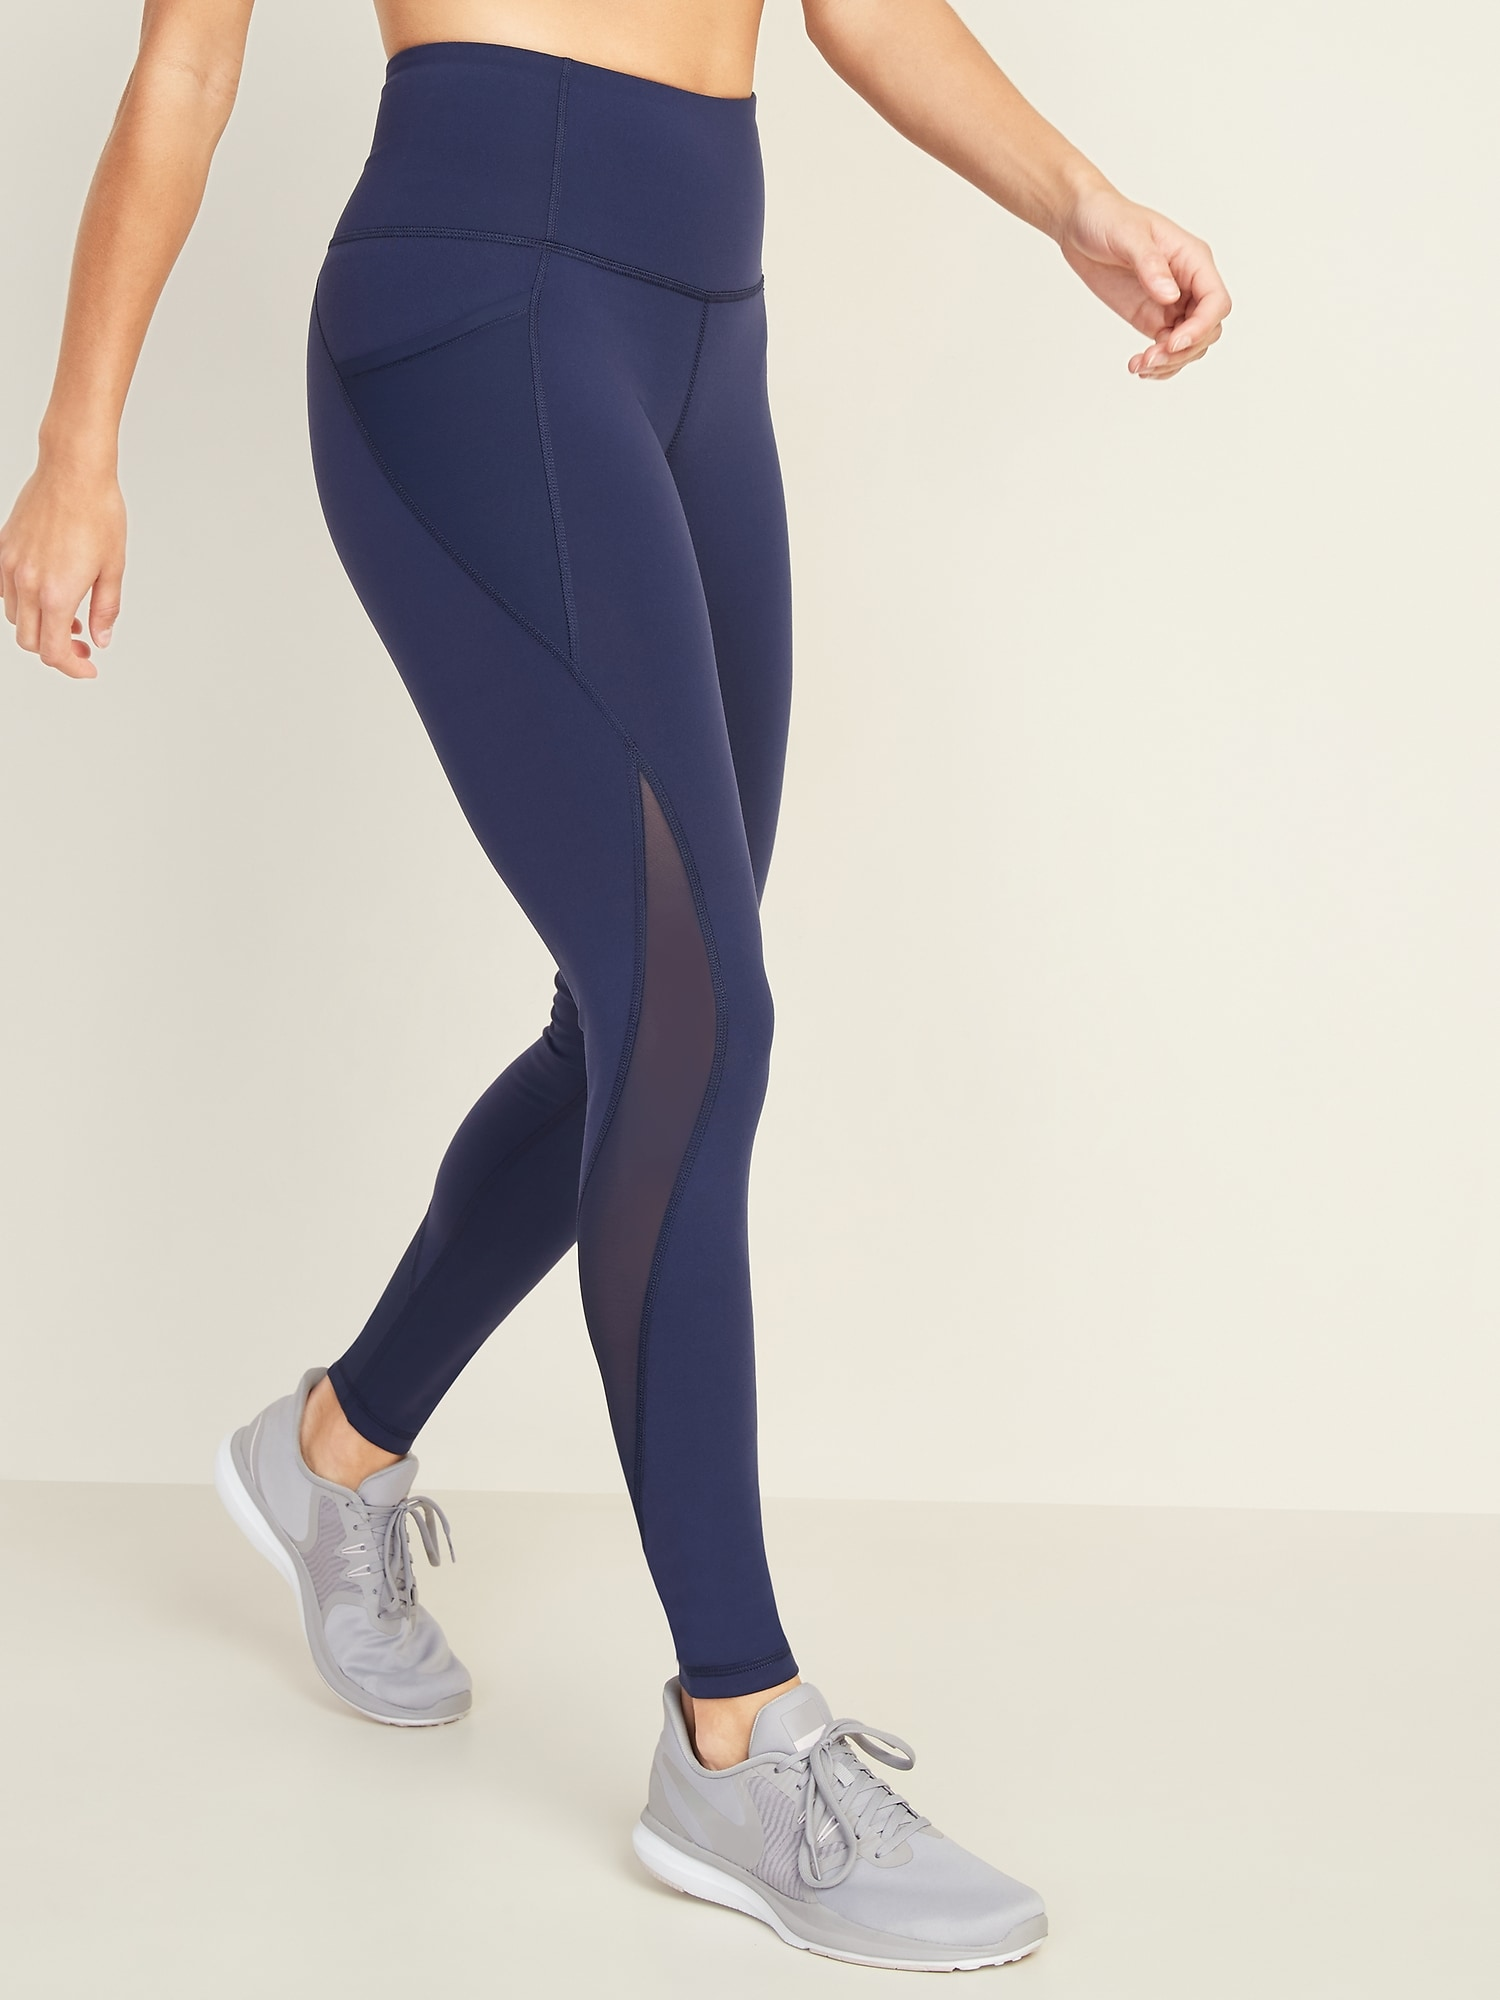 17e6a4f6353361 High-Rise Elevate Side-Pocket Mesh-Trim Compression Leggings for Women